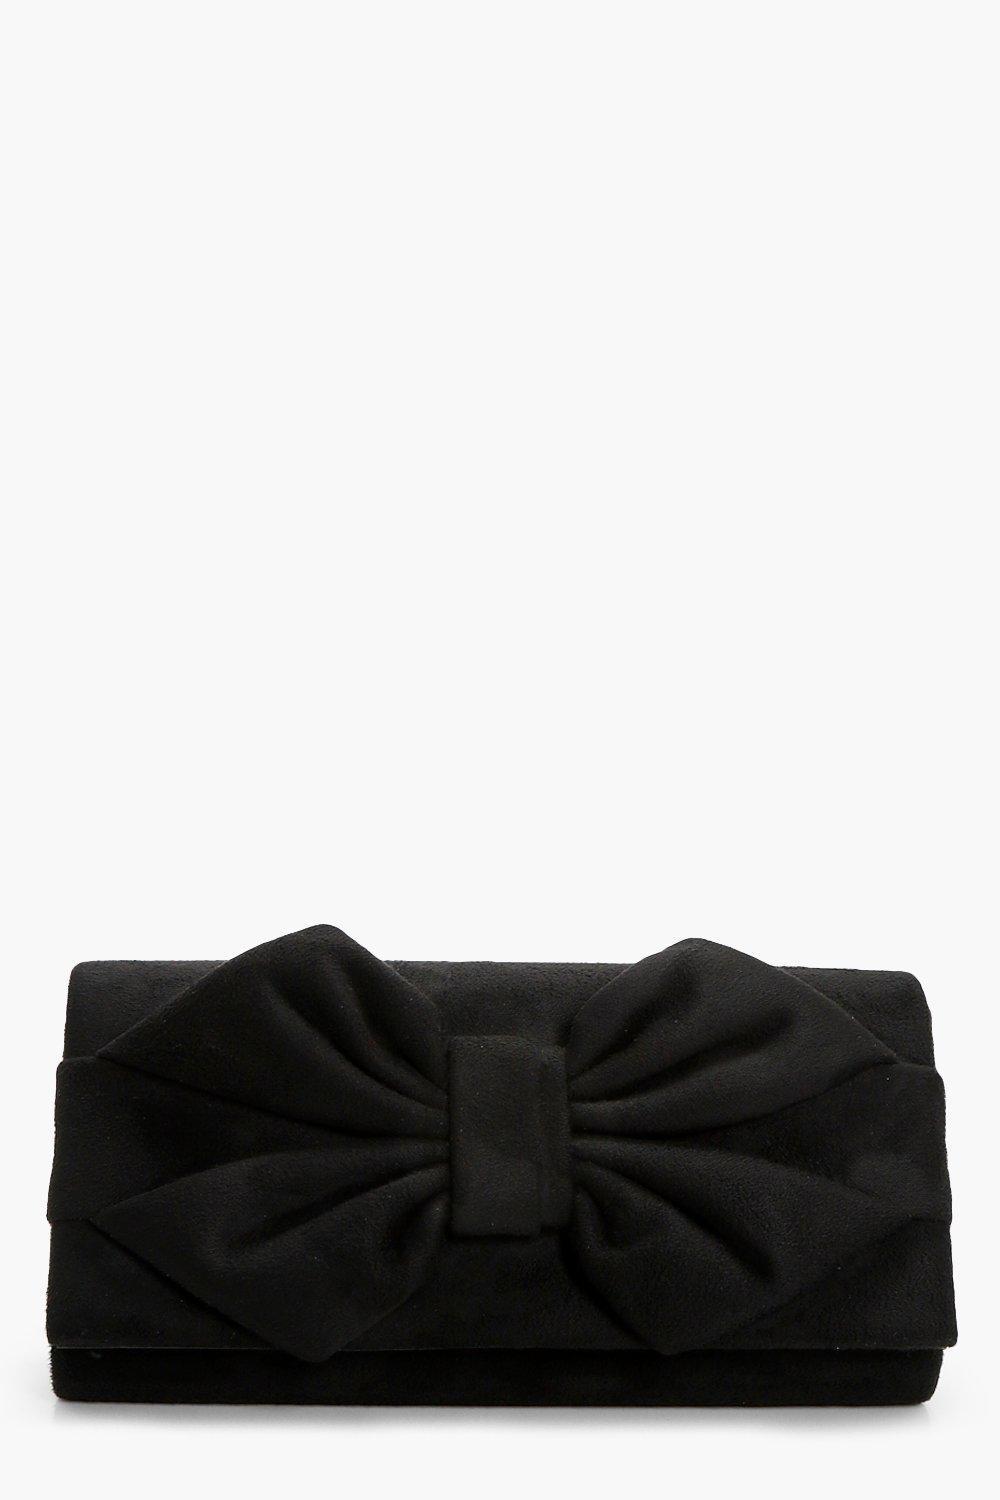 Bow Clutch - black - Daisy Bow Clutch - black